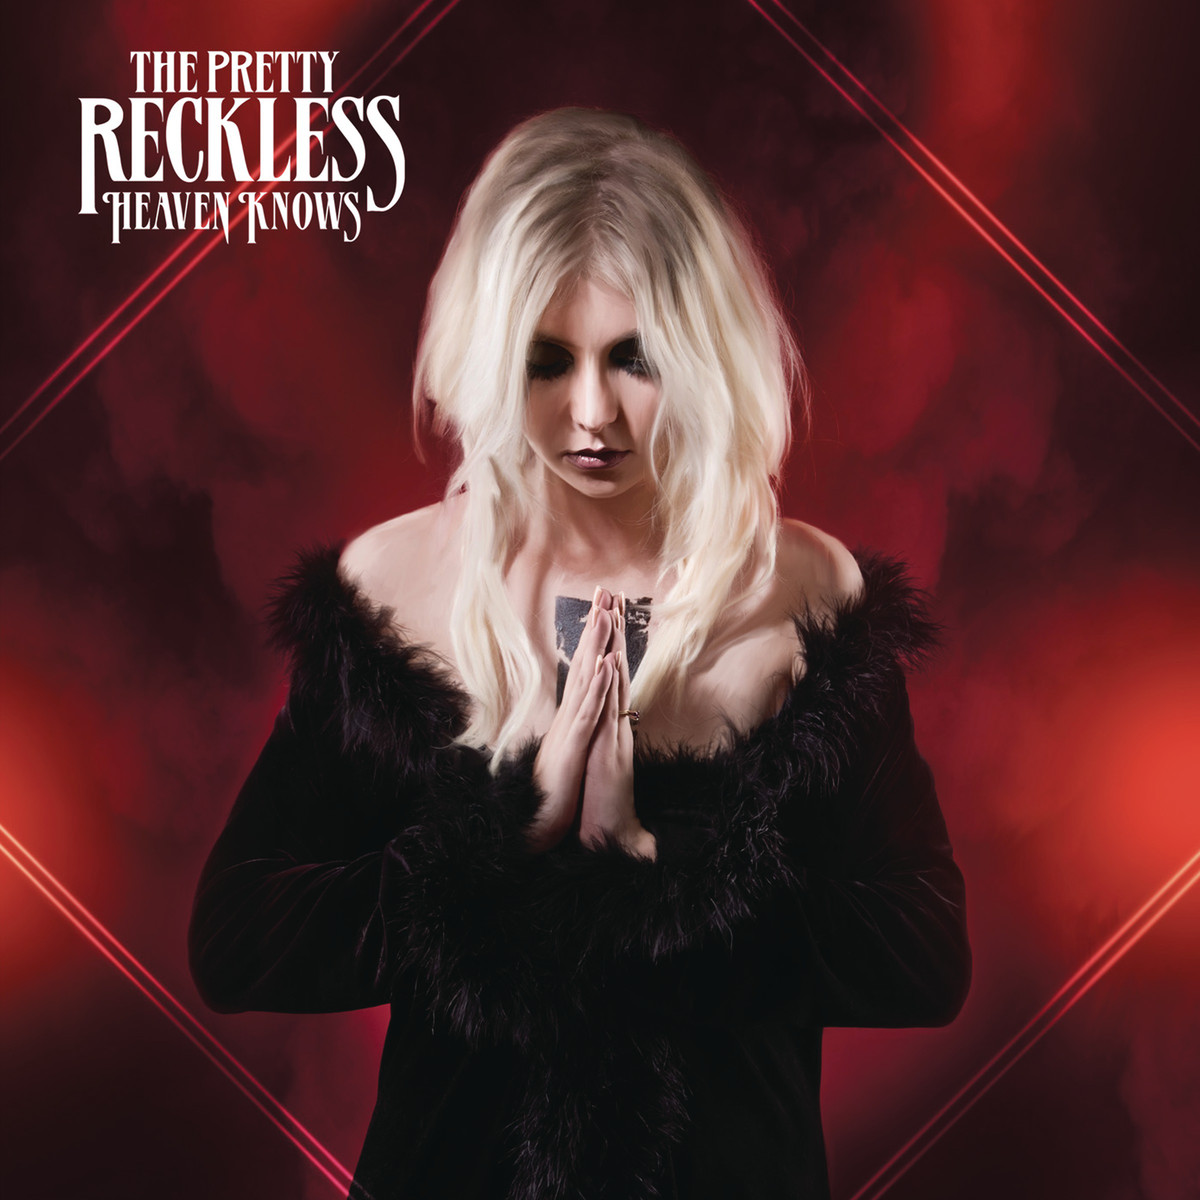 The-Pretty-Reckless-Heaven-Knows-2013-1200x1200